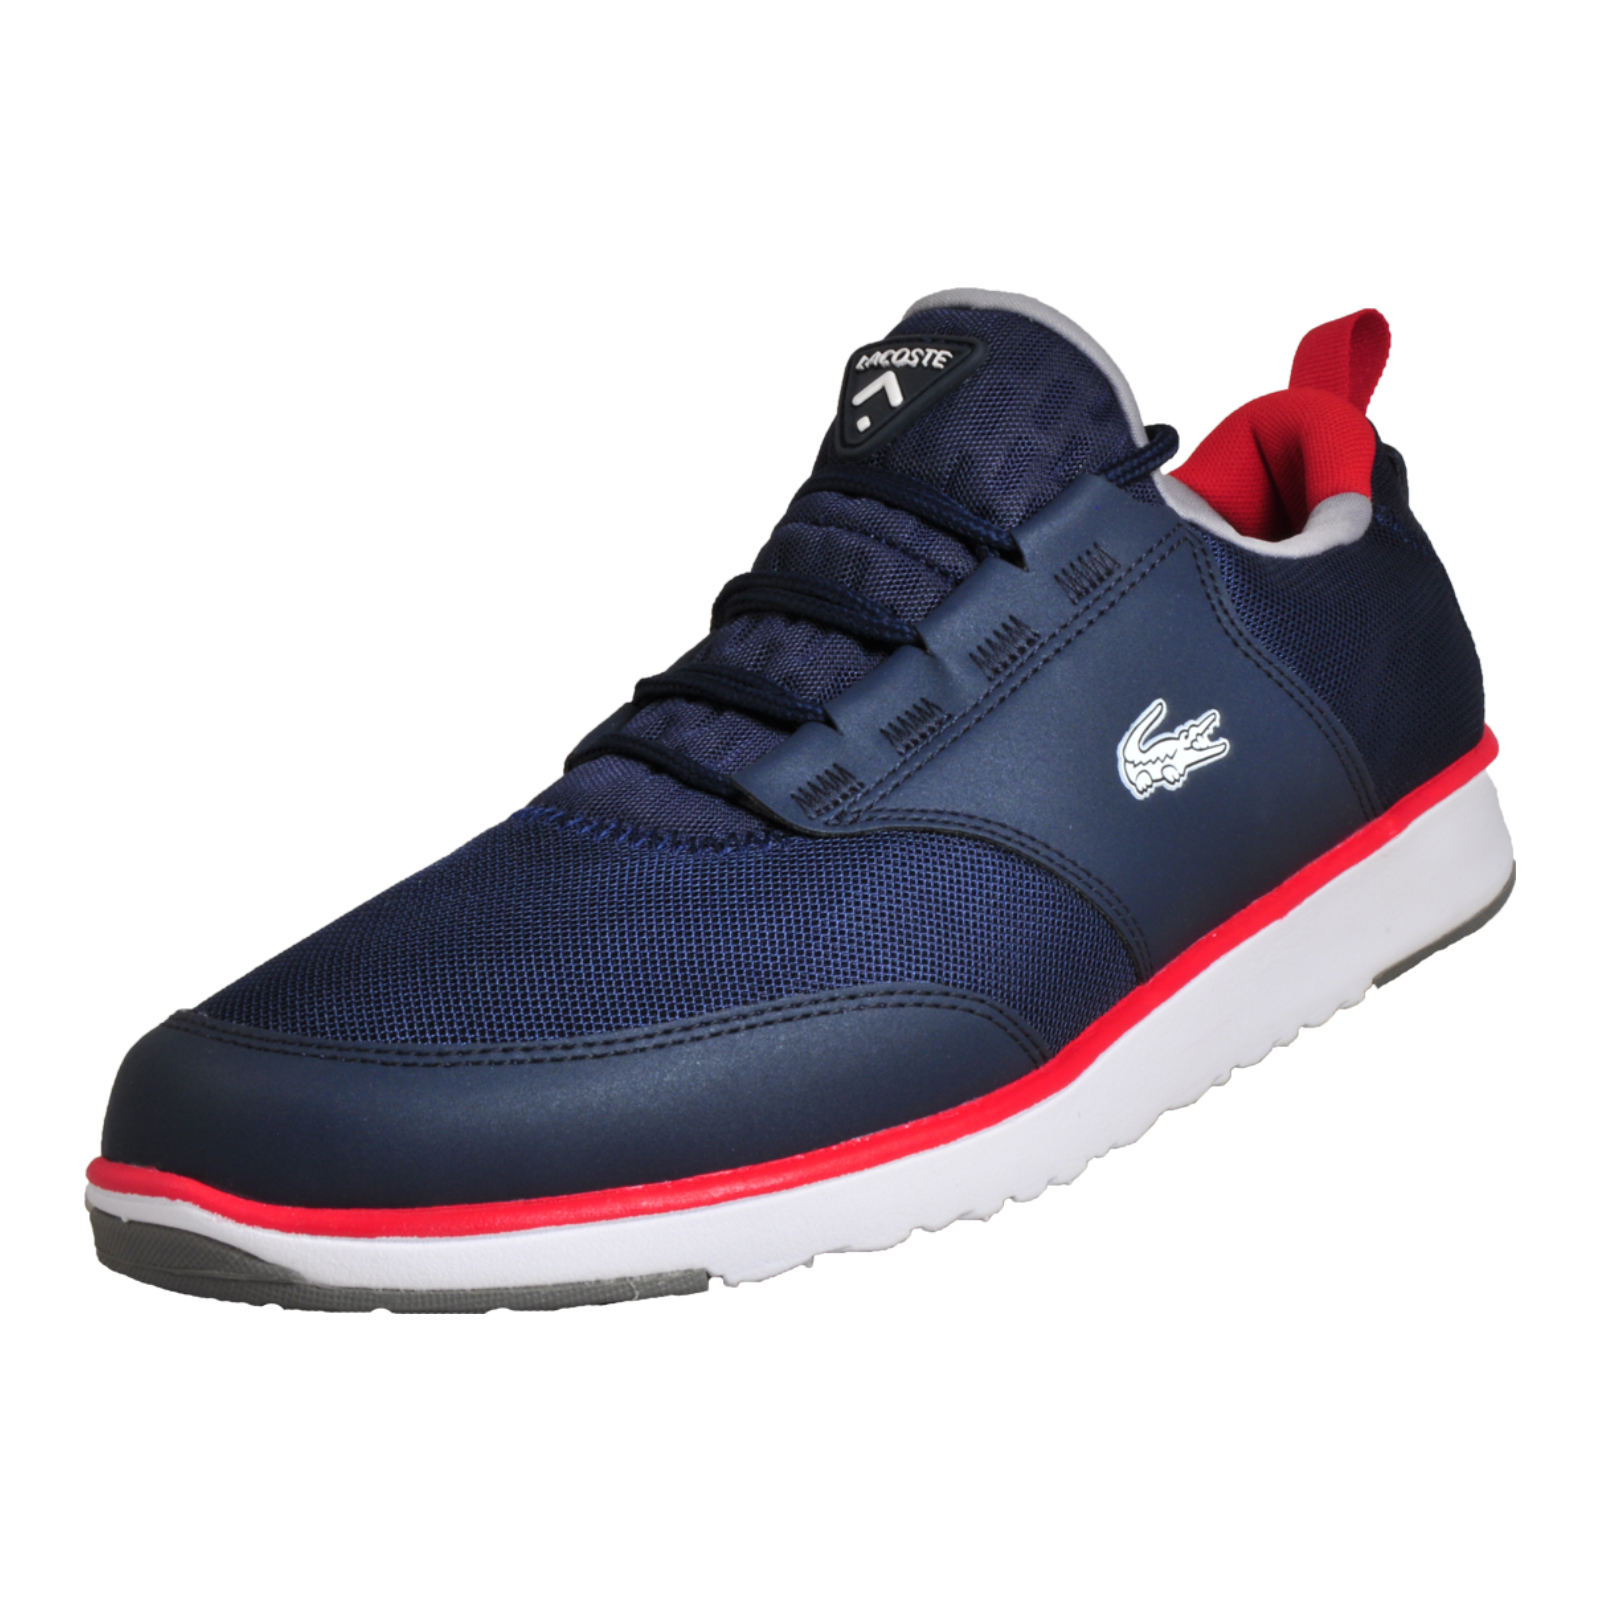 1b5bf9670b55 Details about Lacoste Light TRF5 SPM Mens Casual Sport Fashion Retro  Trainers Blue